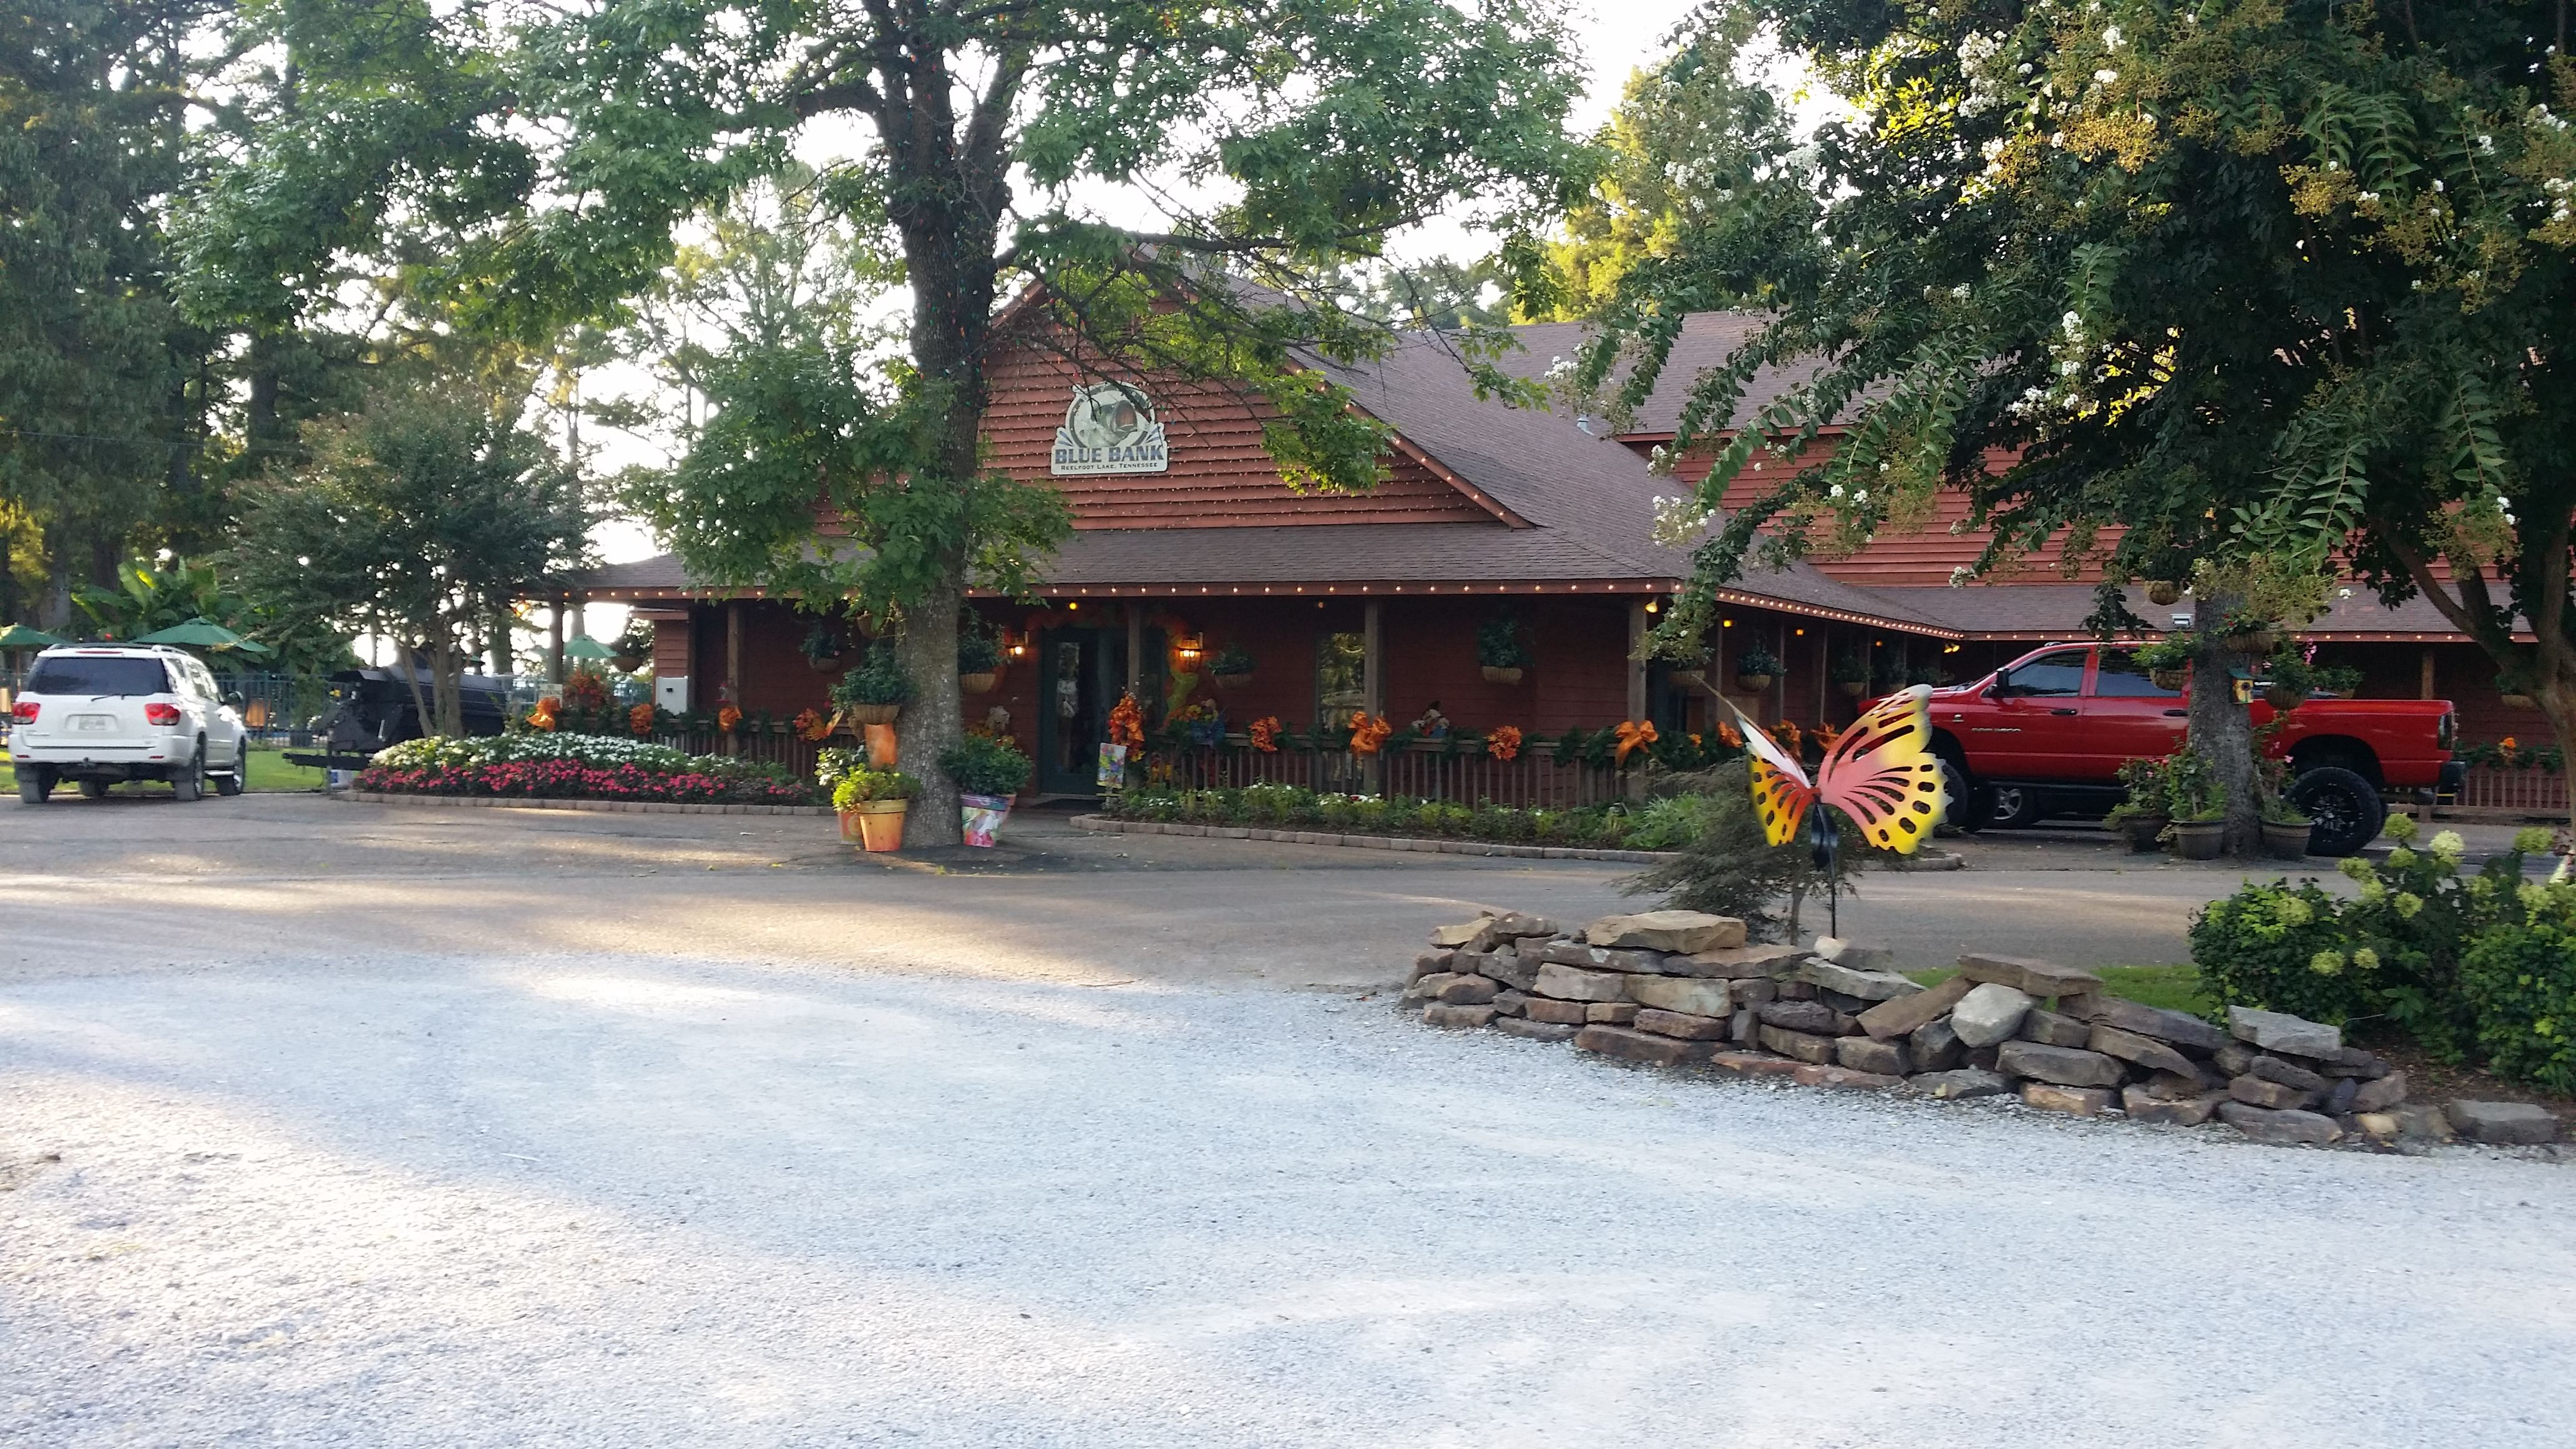 Blue Bank Resort at Reelfoot Lake | Restaurants | Blue, Fish, Restaurant